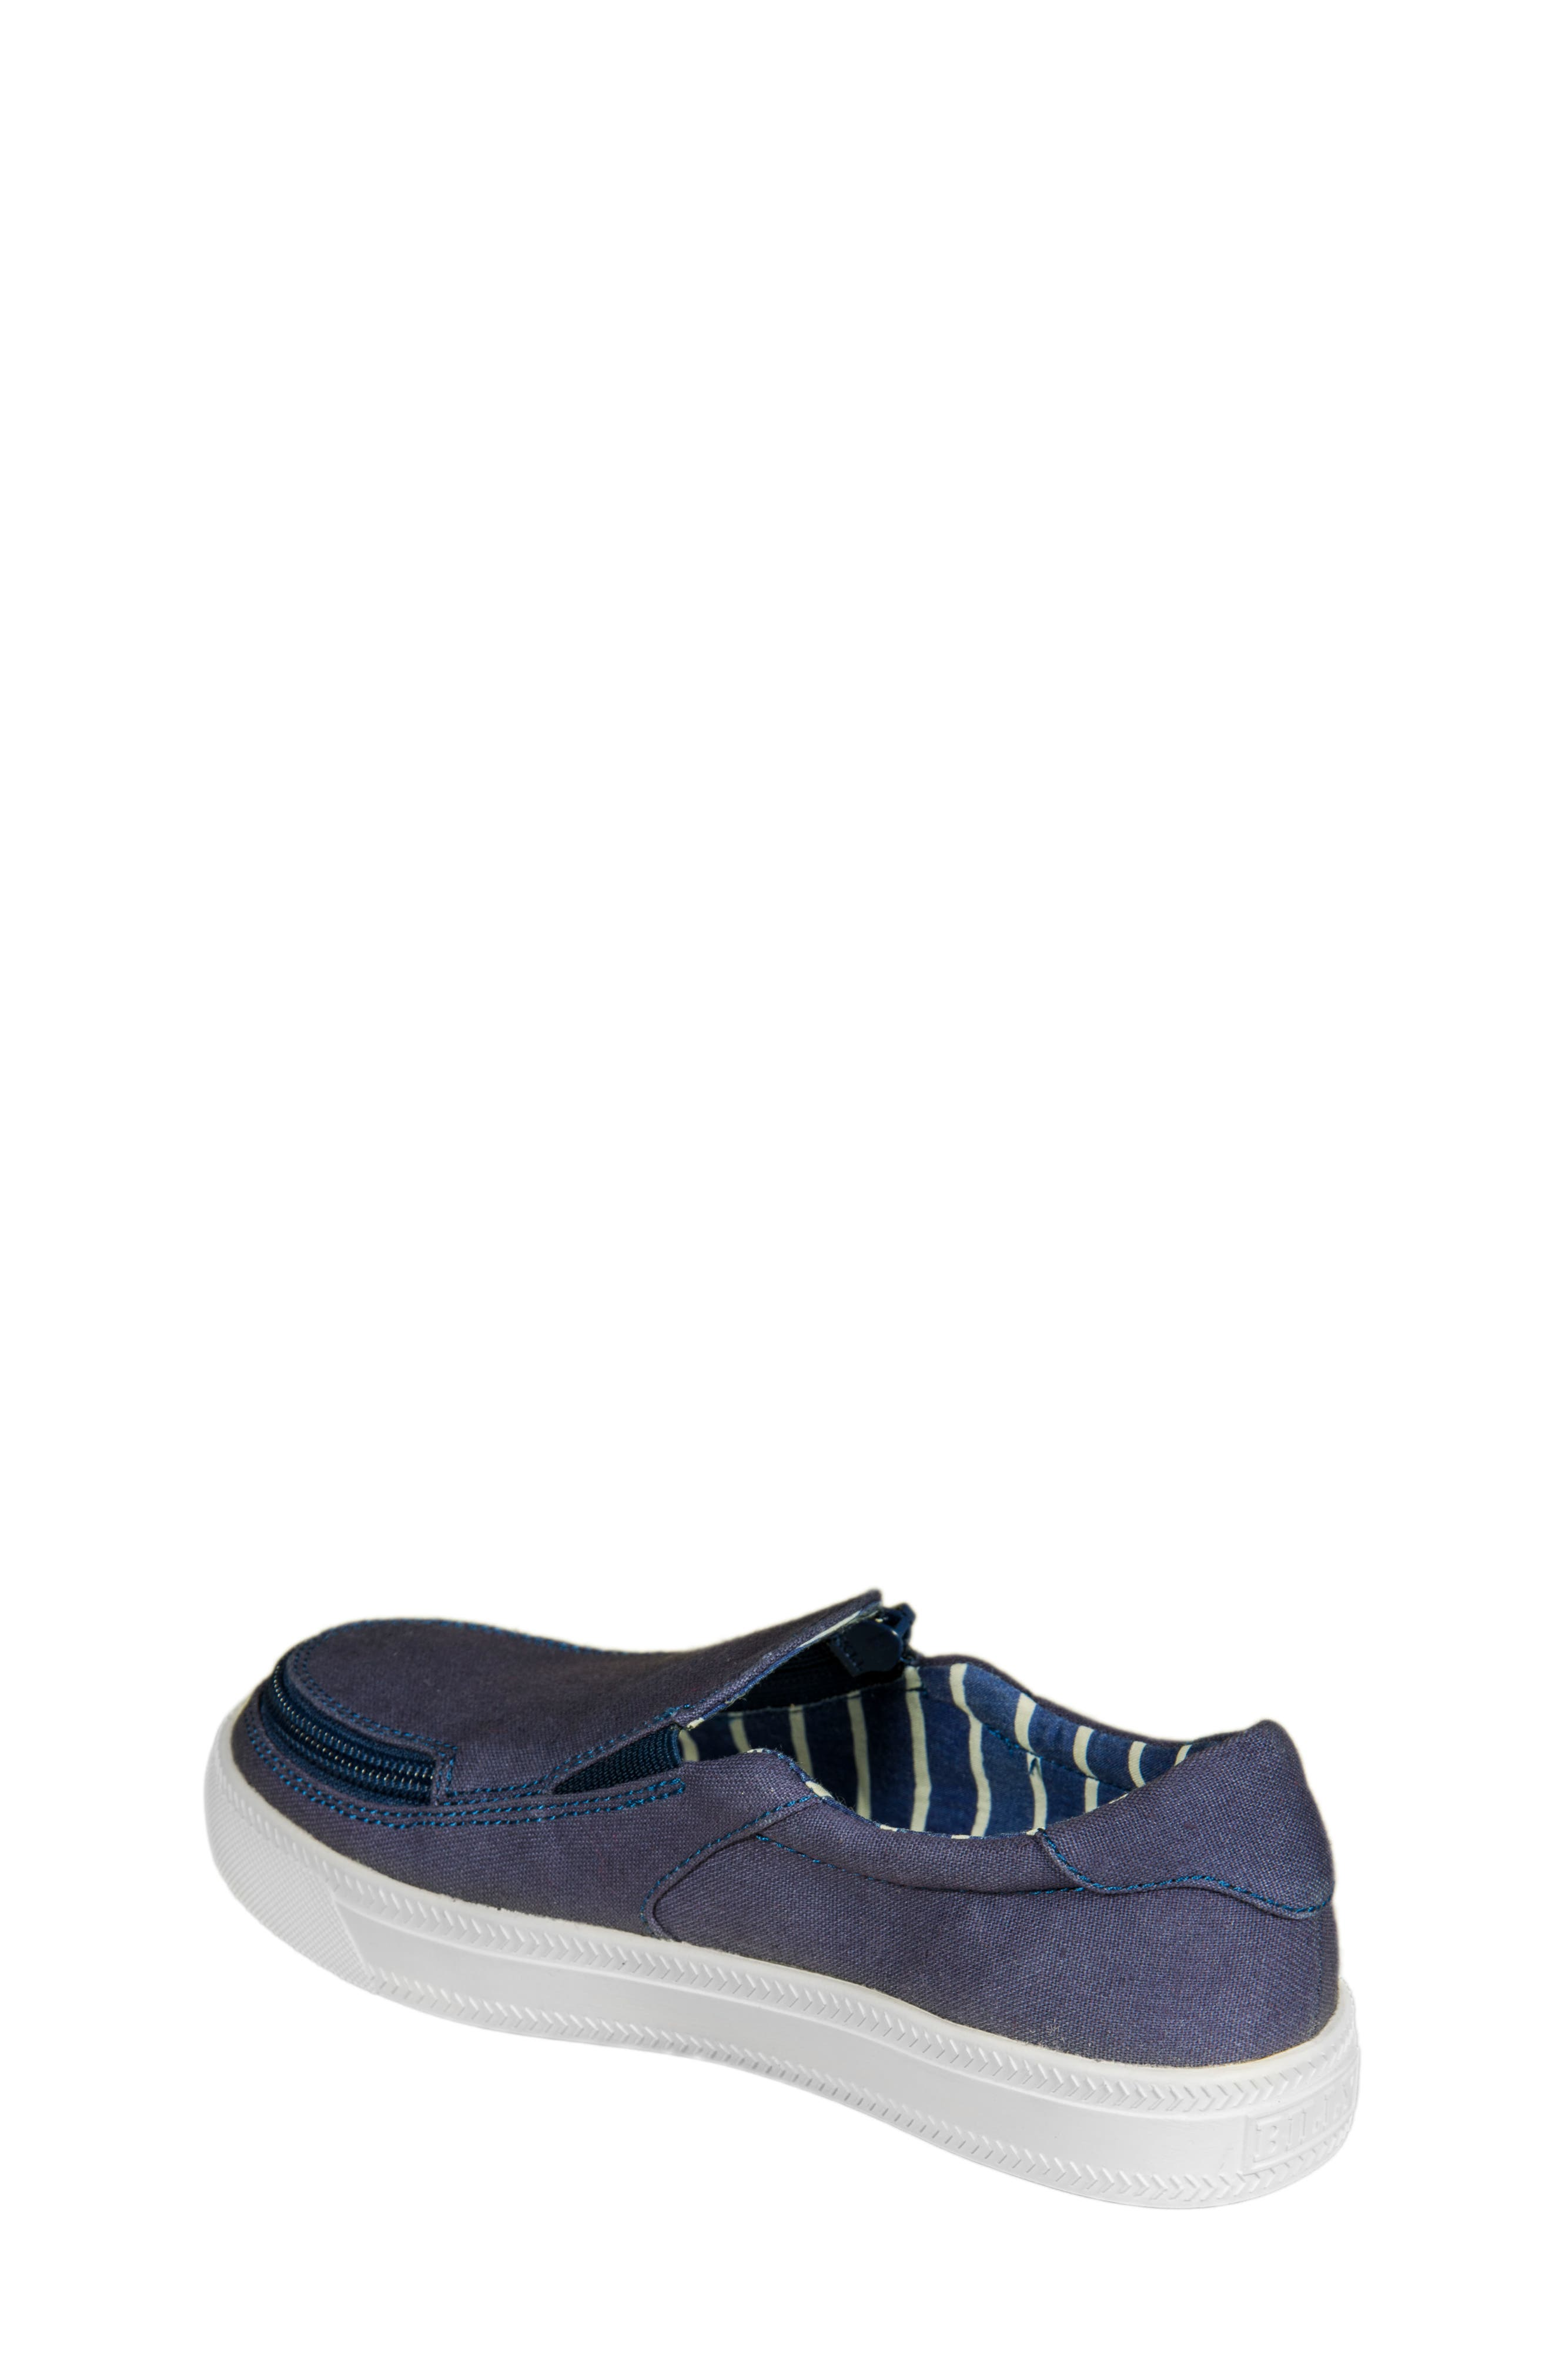 Zip Around Low Top Sneaker,                             Alternate thumbnail 4, color,